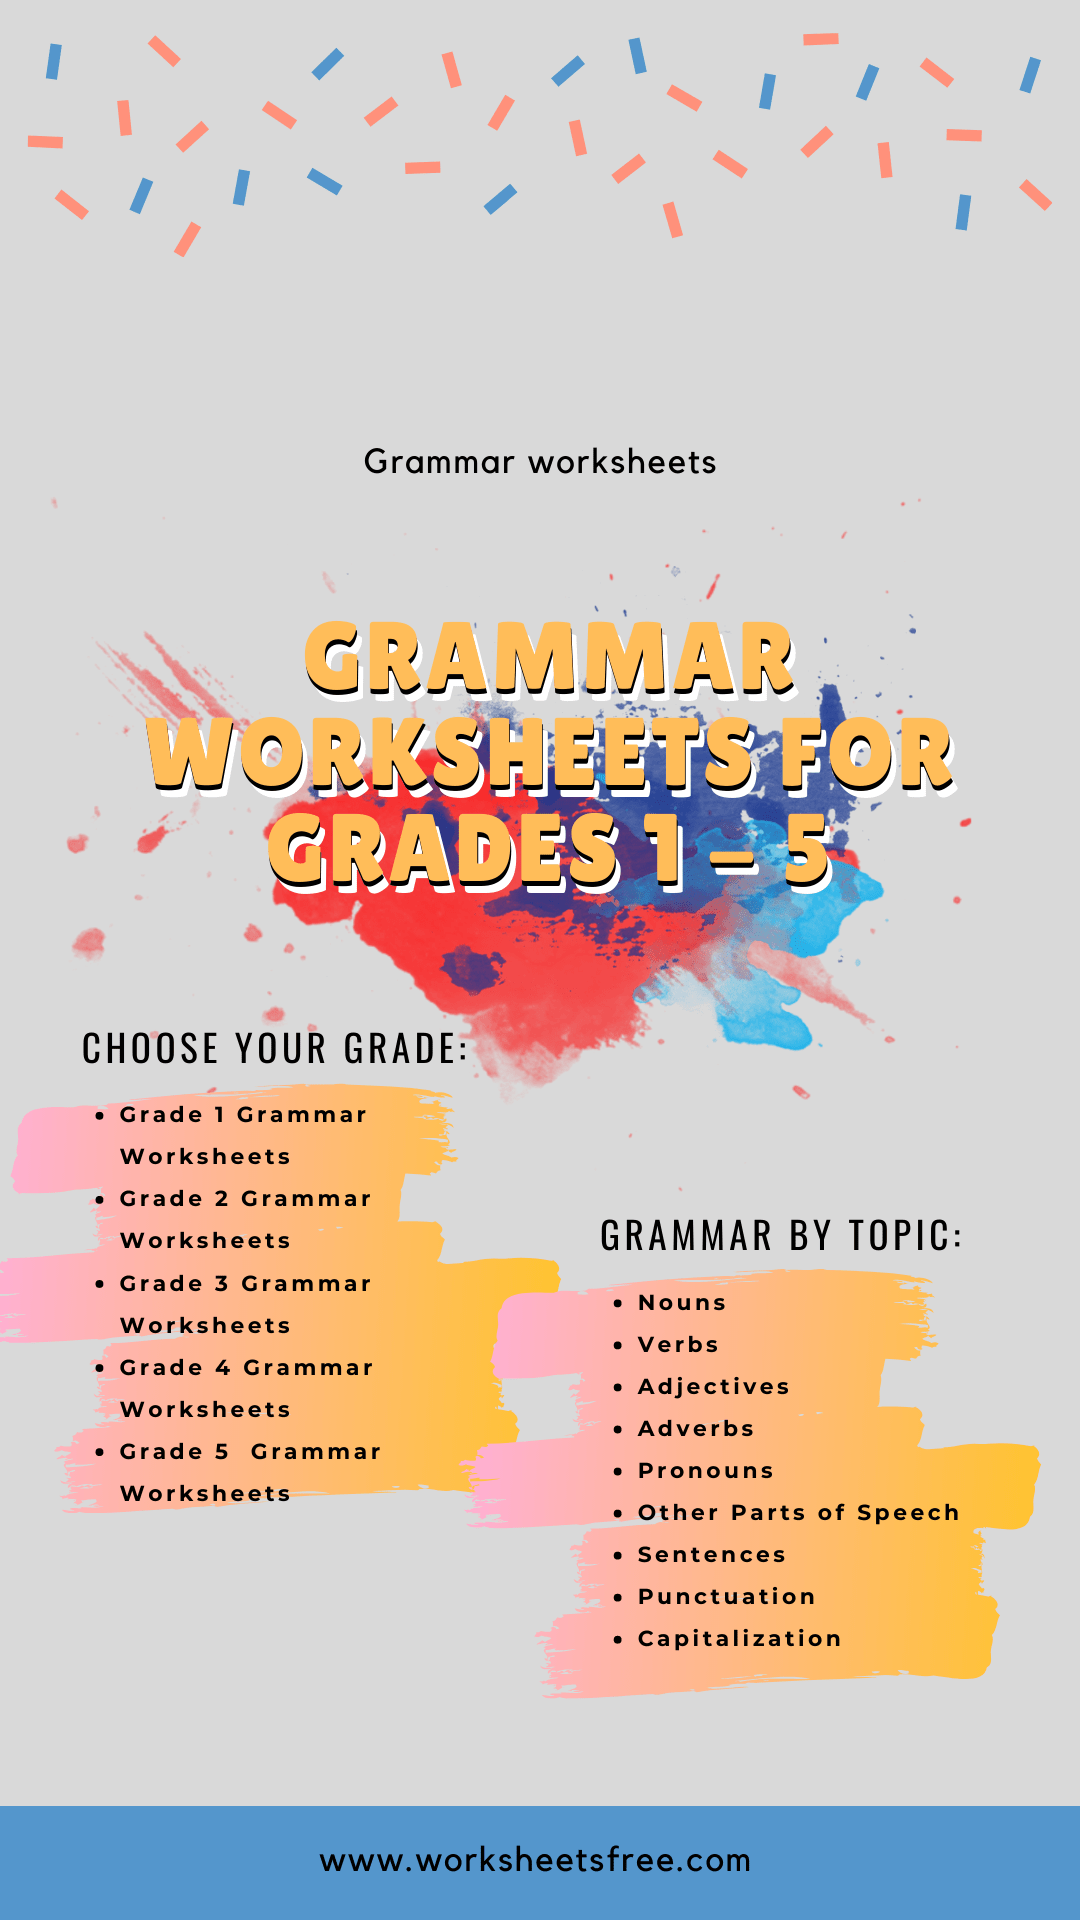 small resolution of Grammar worksheets for grades 1 – 5 : Grammar Worksheets   Worksheets Free